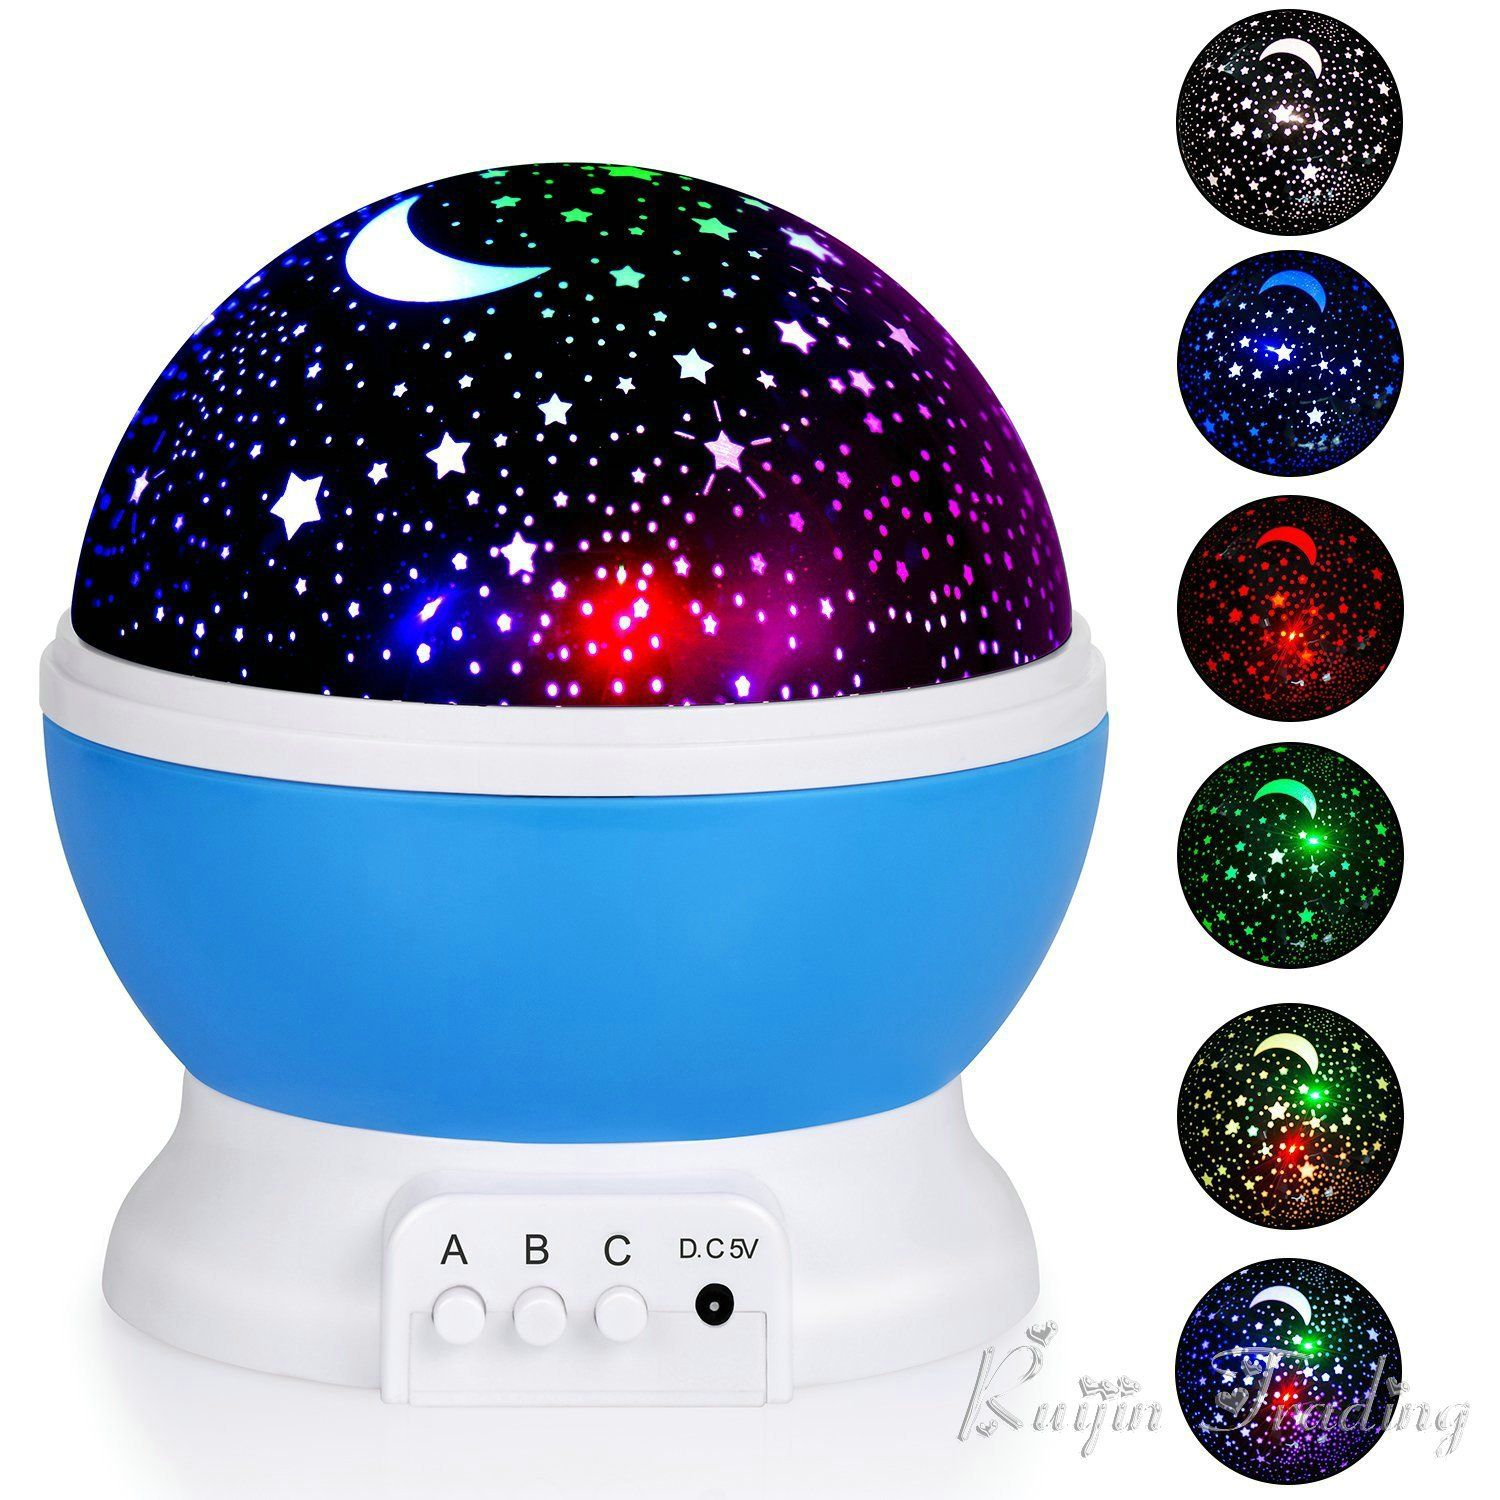 Star Moon Light Rotating Projector Lamp Ceiling Lights for Sleep Relax or Party